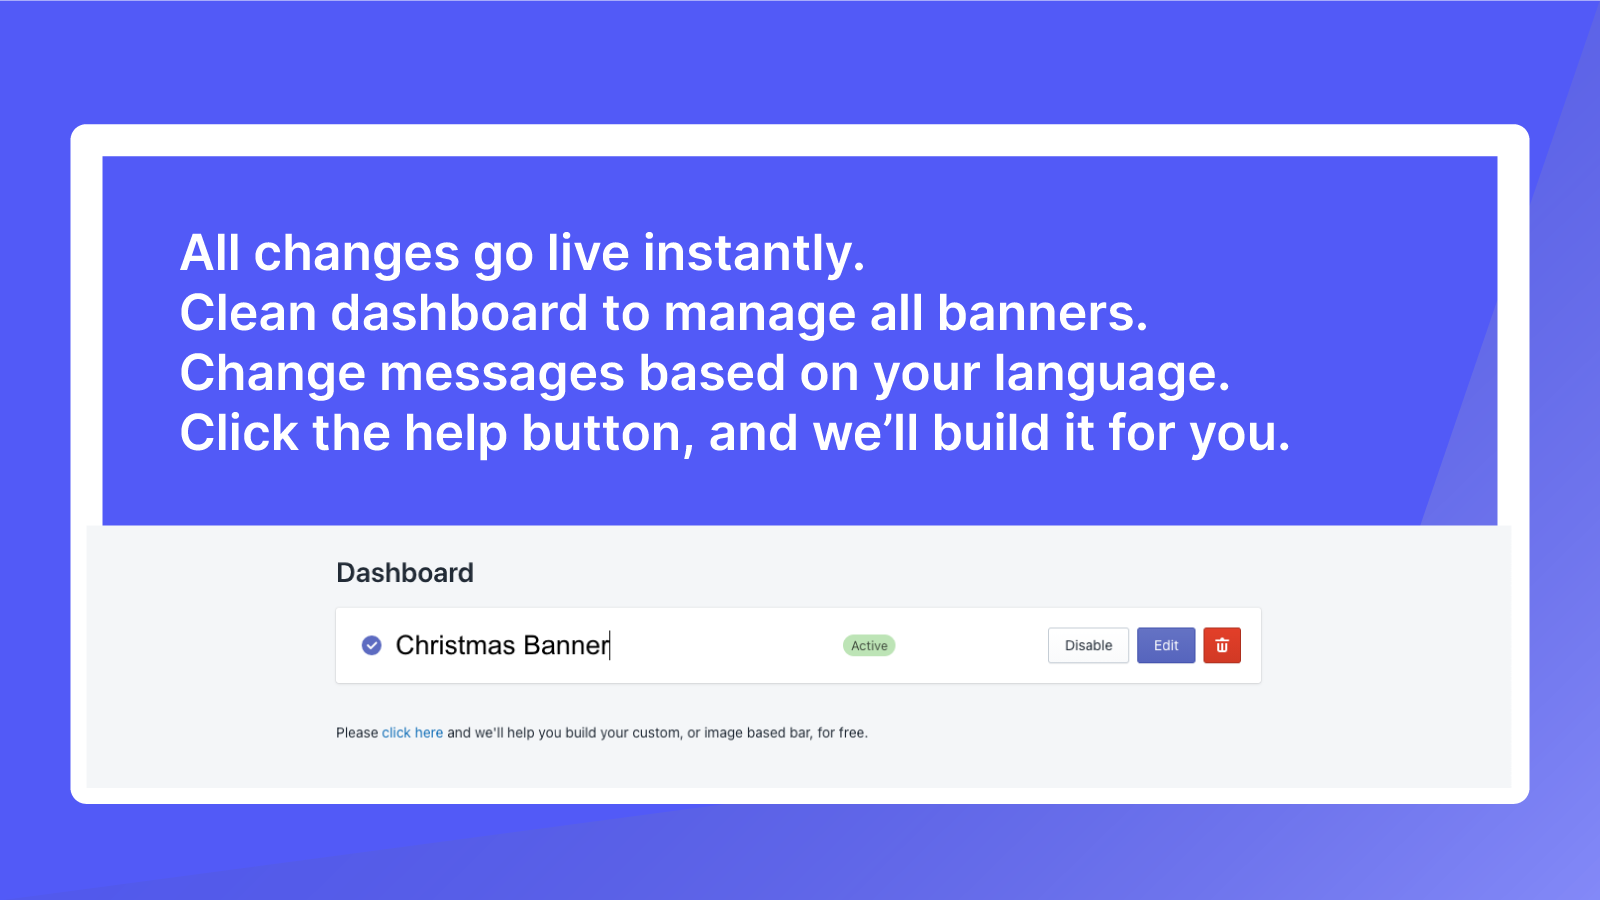 Clean Dashboard, Full tech support, and design support.